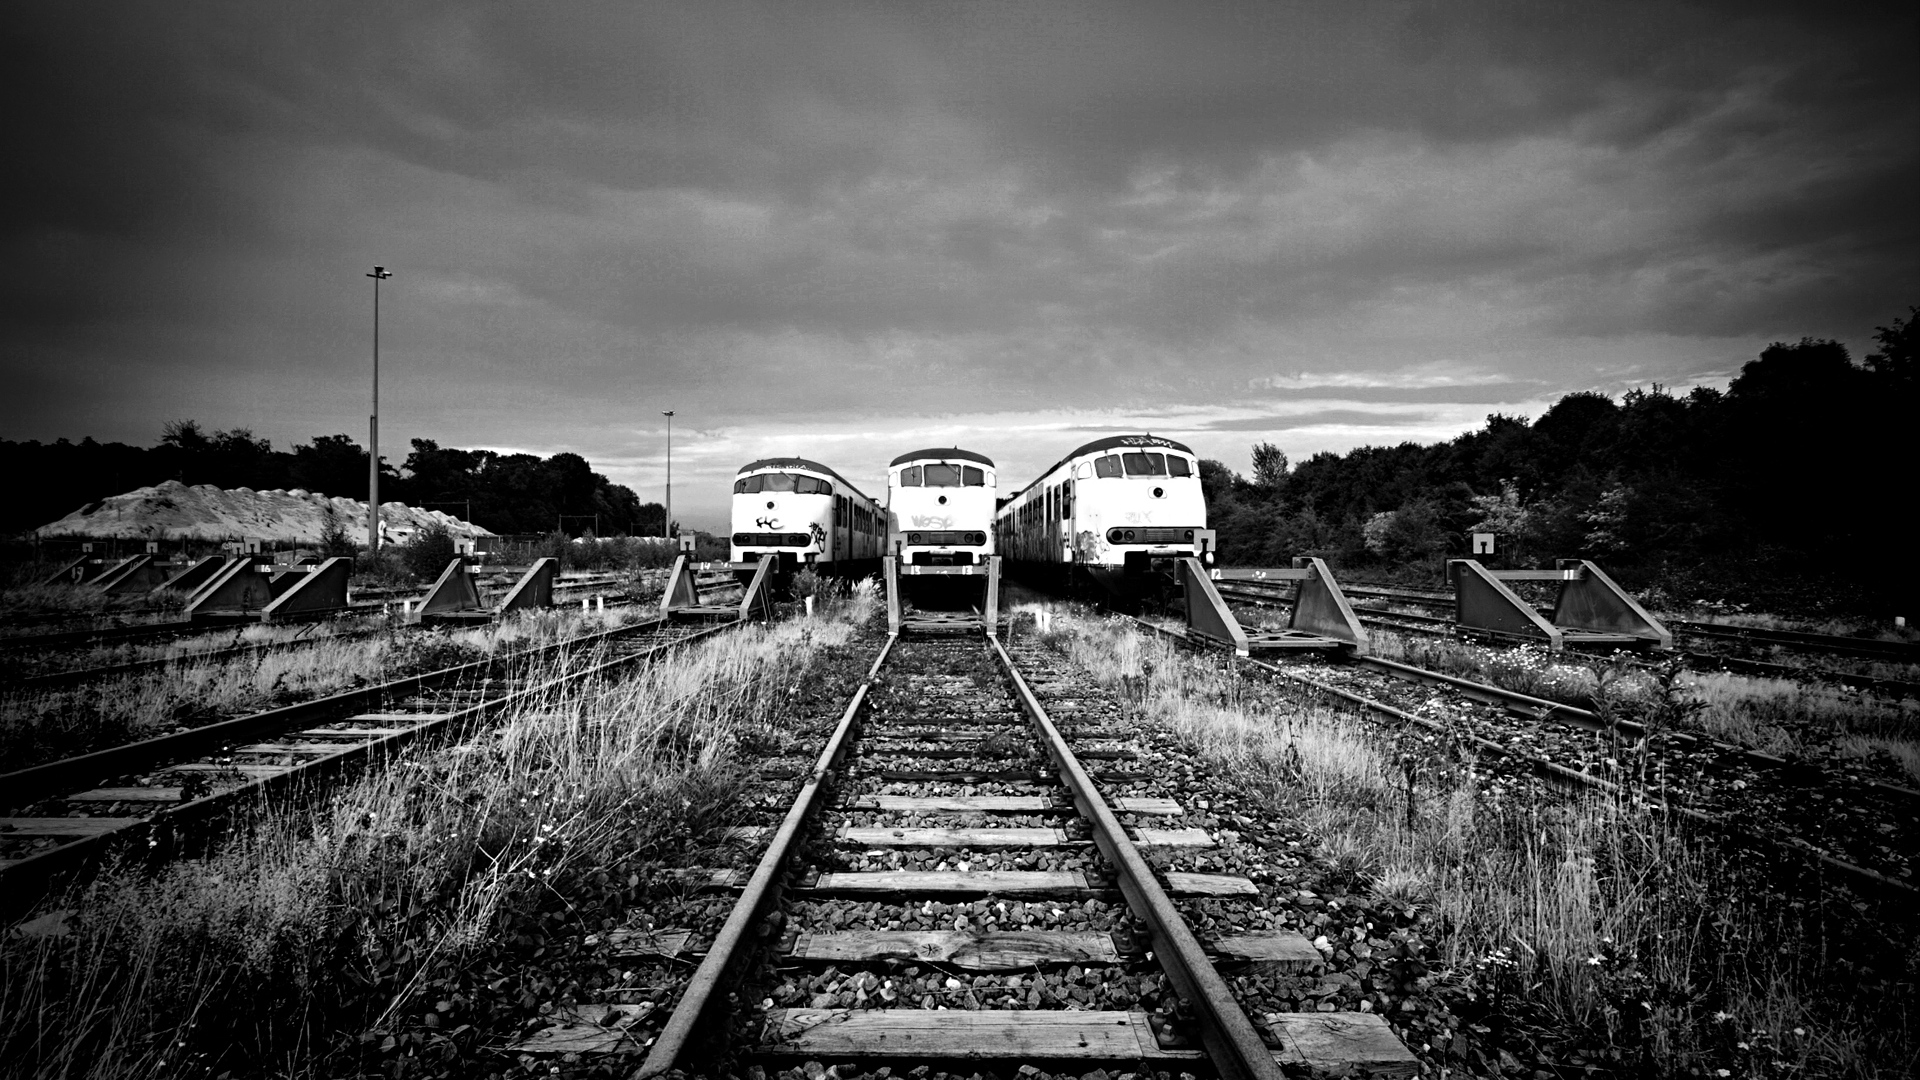 Preview wallpaper train, railway, rails, black and white 1920x1080 - Train Track PNG HD